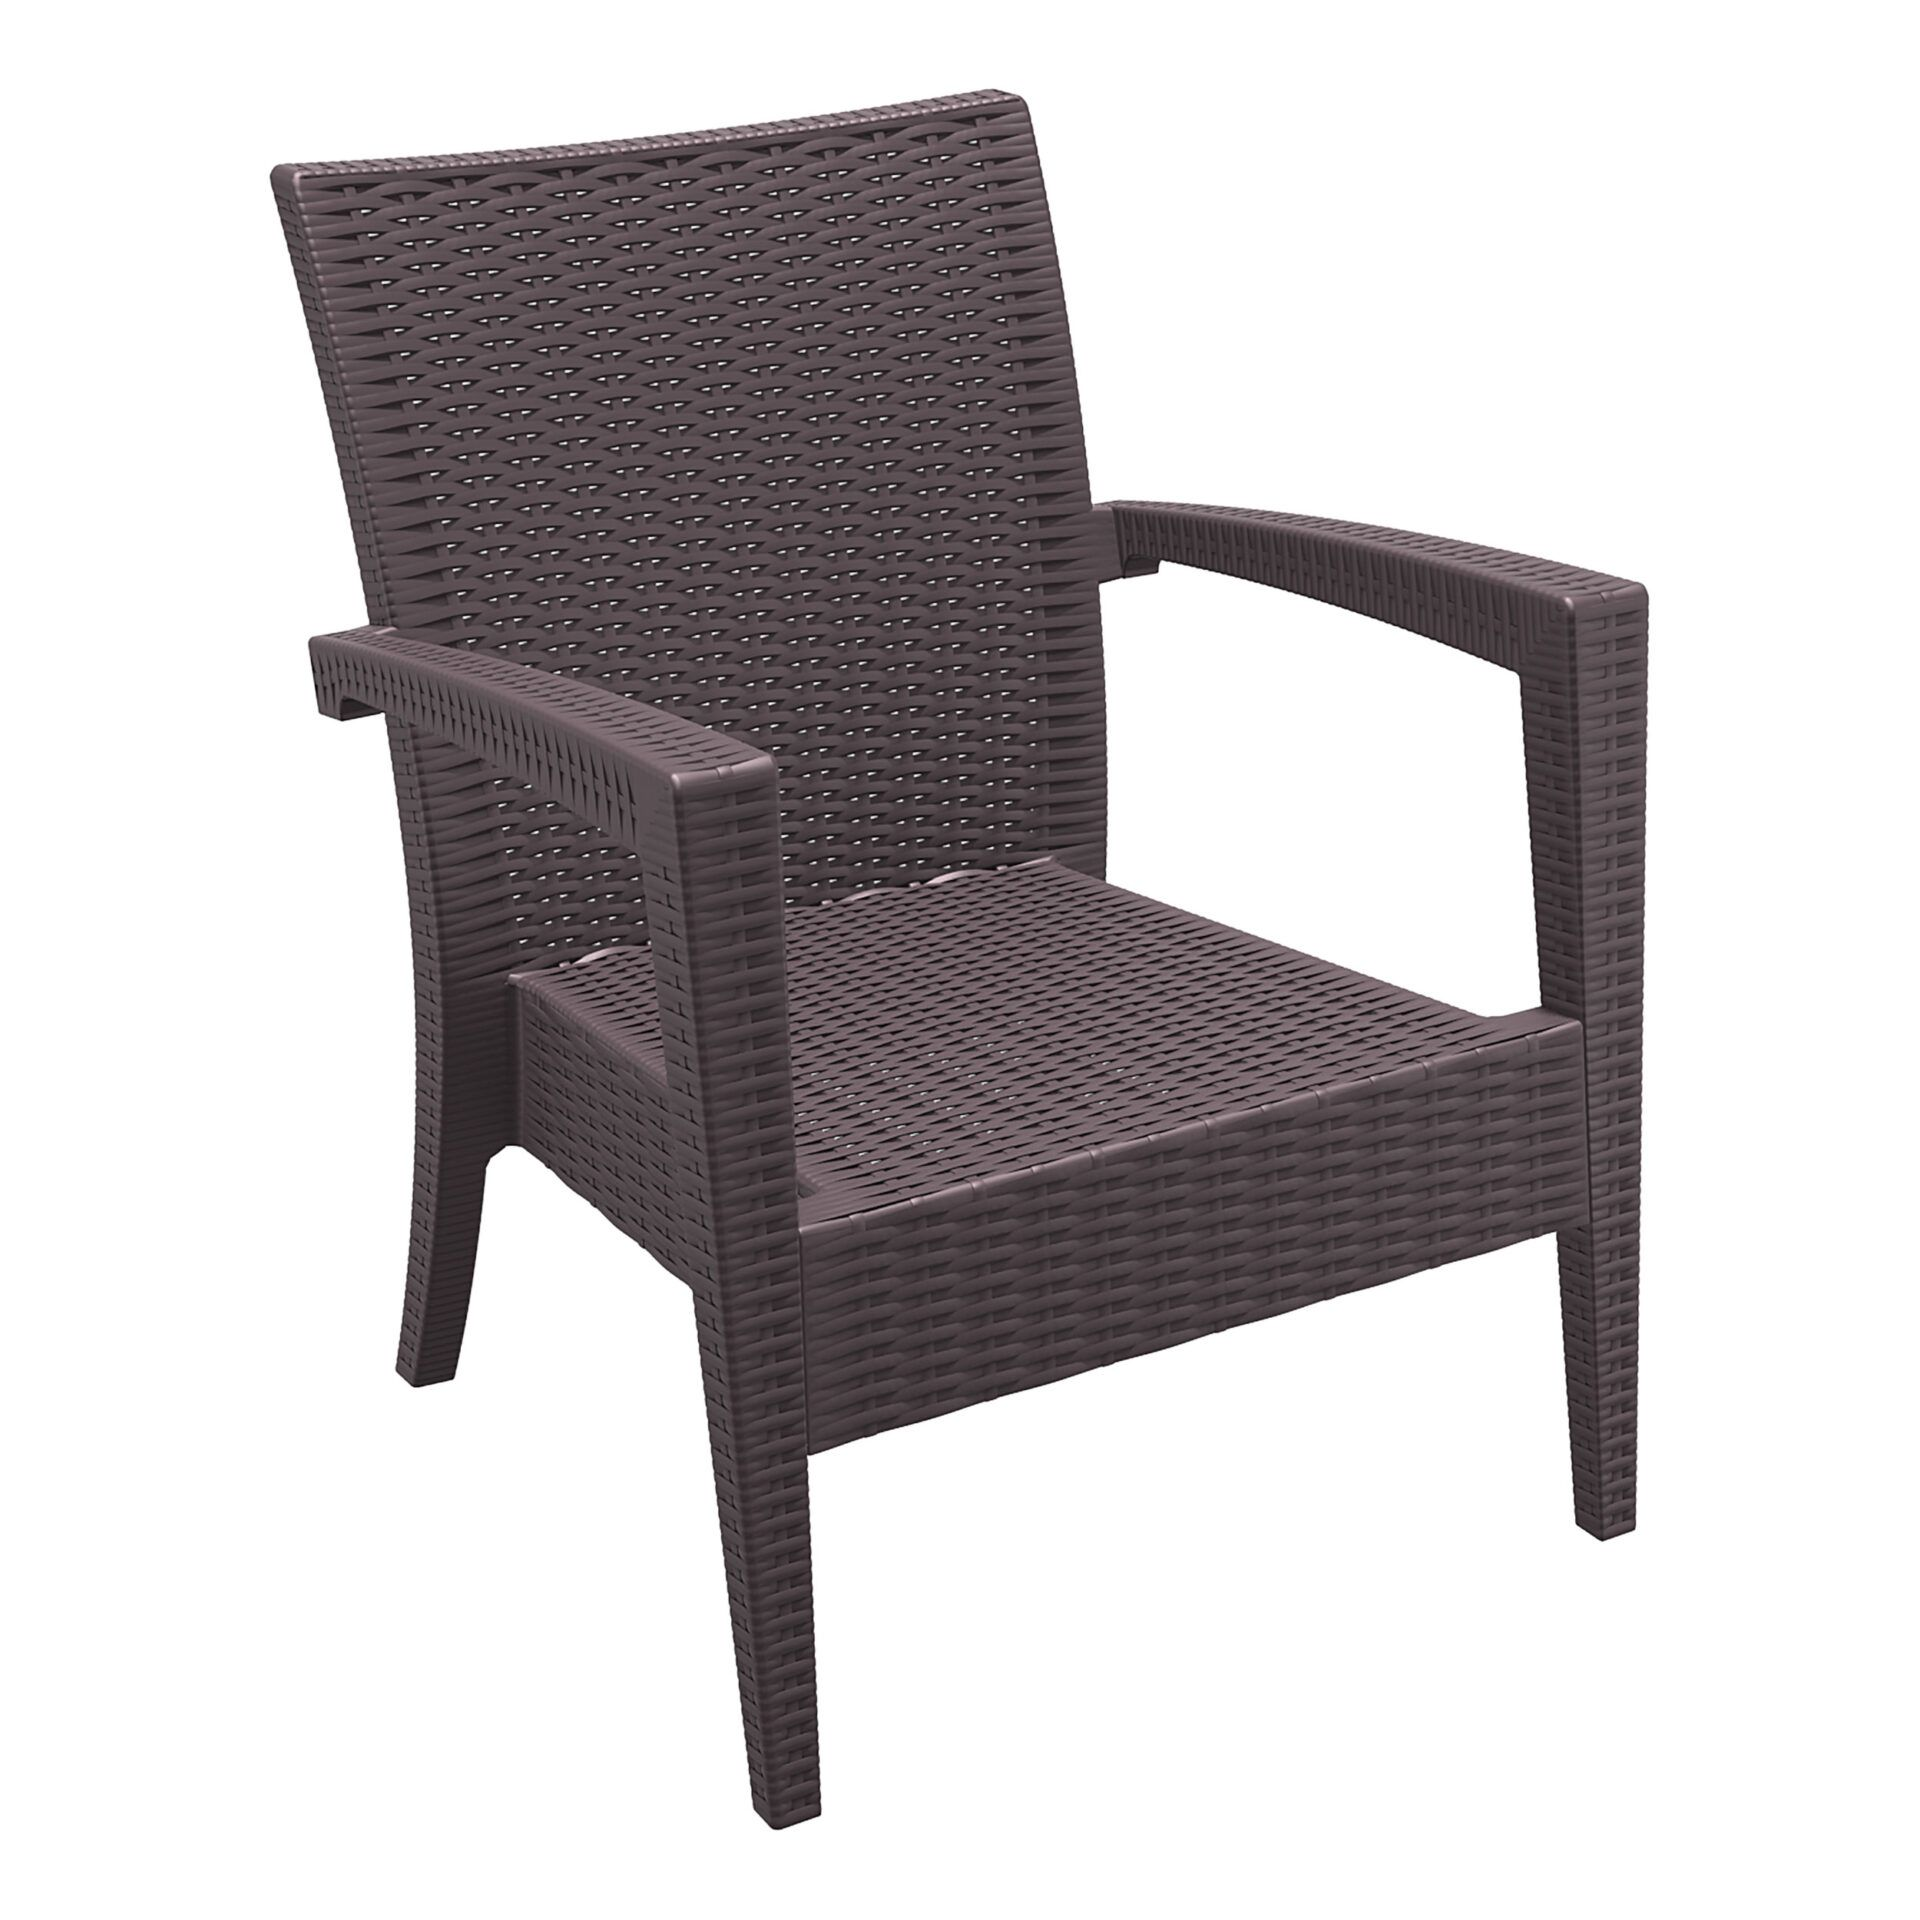 resin rattan miami tequila lounge armchair brown front side